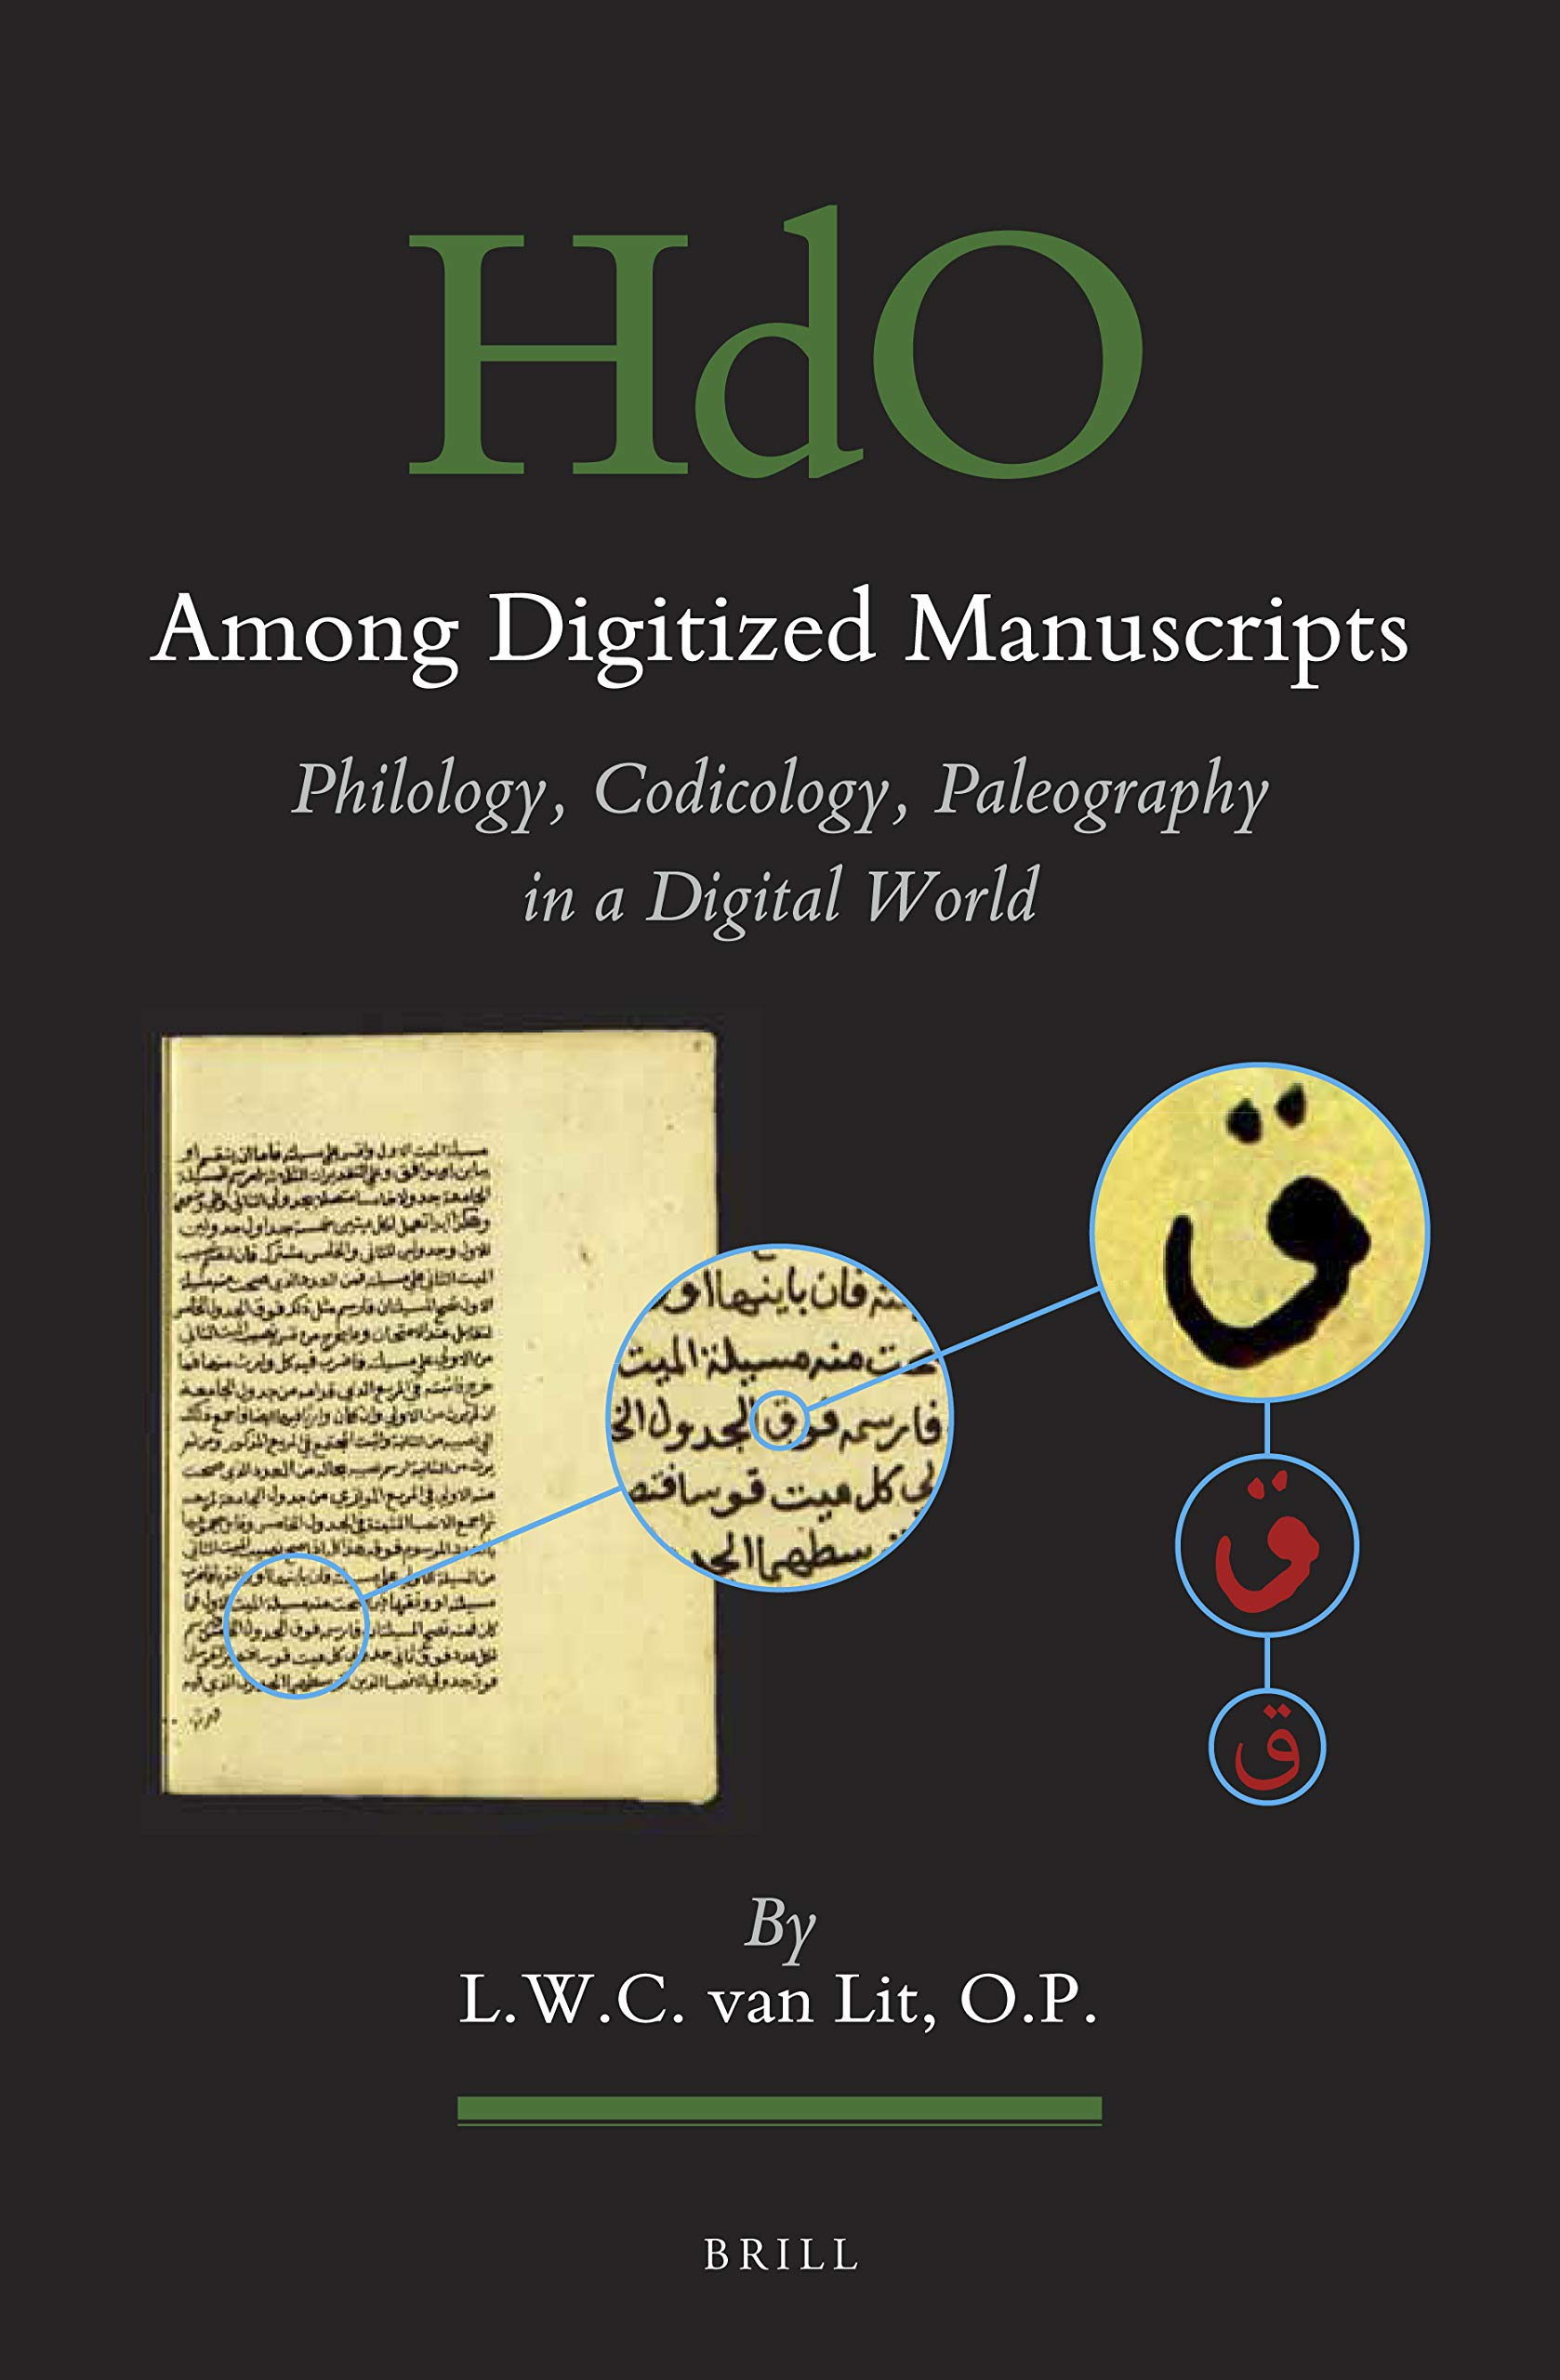 Among Digitized Manuscripts. Philology, Codicology, Palaeography in a Digital World